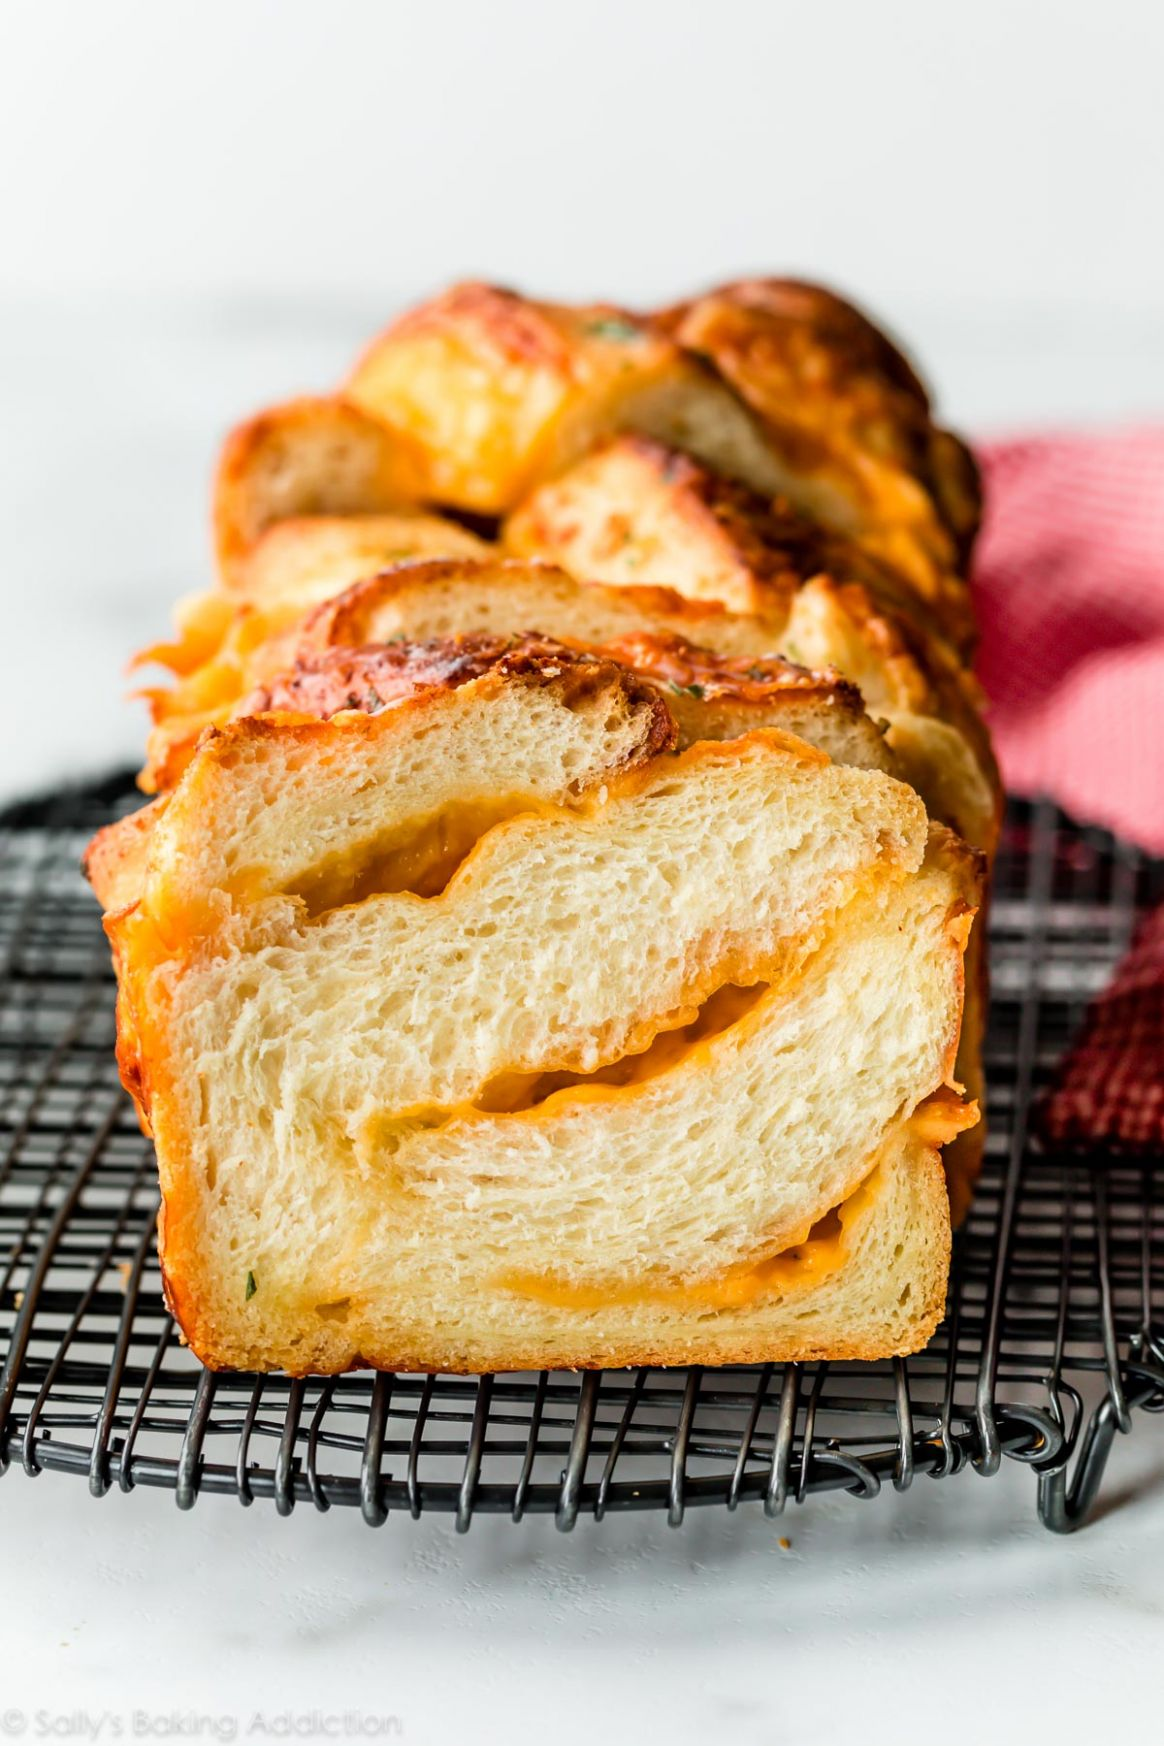 Homemade Cheese Bread - Extra Soft - Simple Recipes With Bread